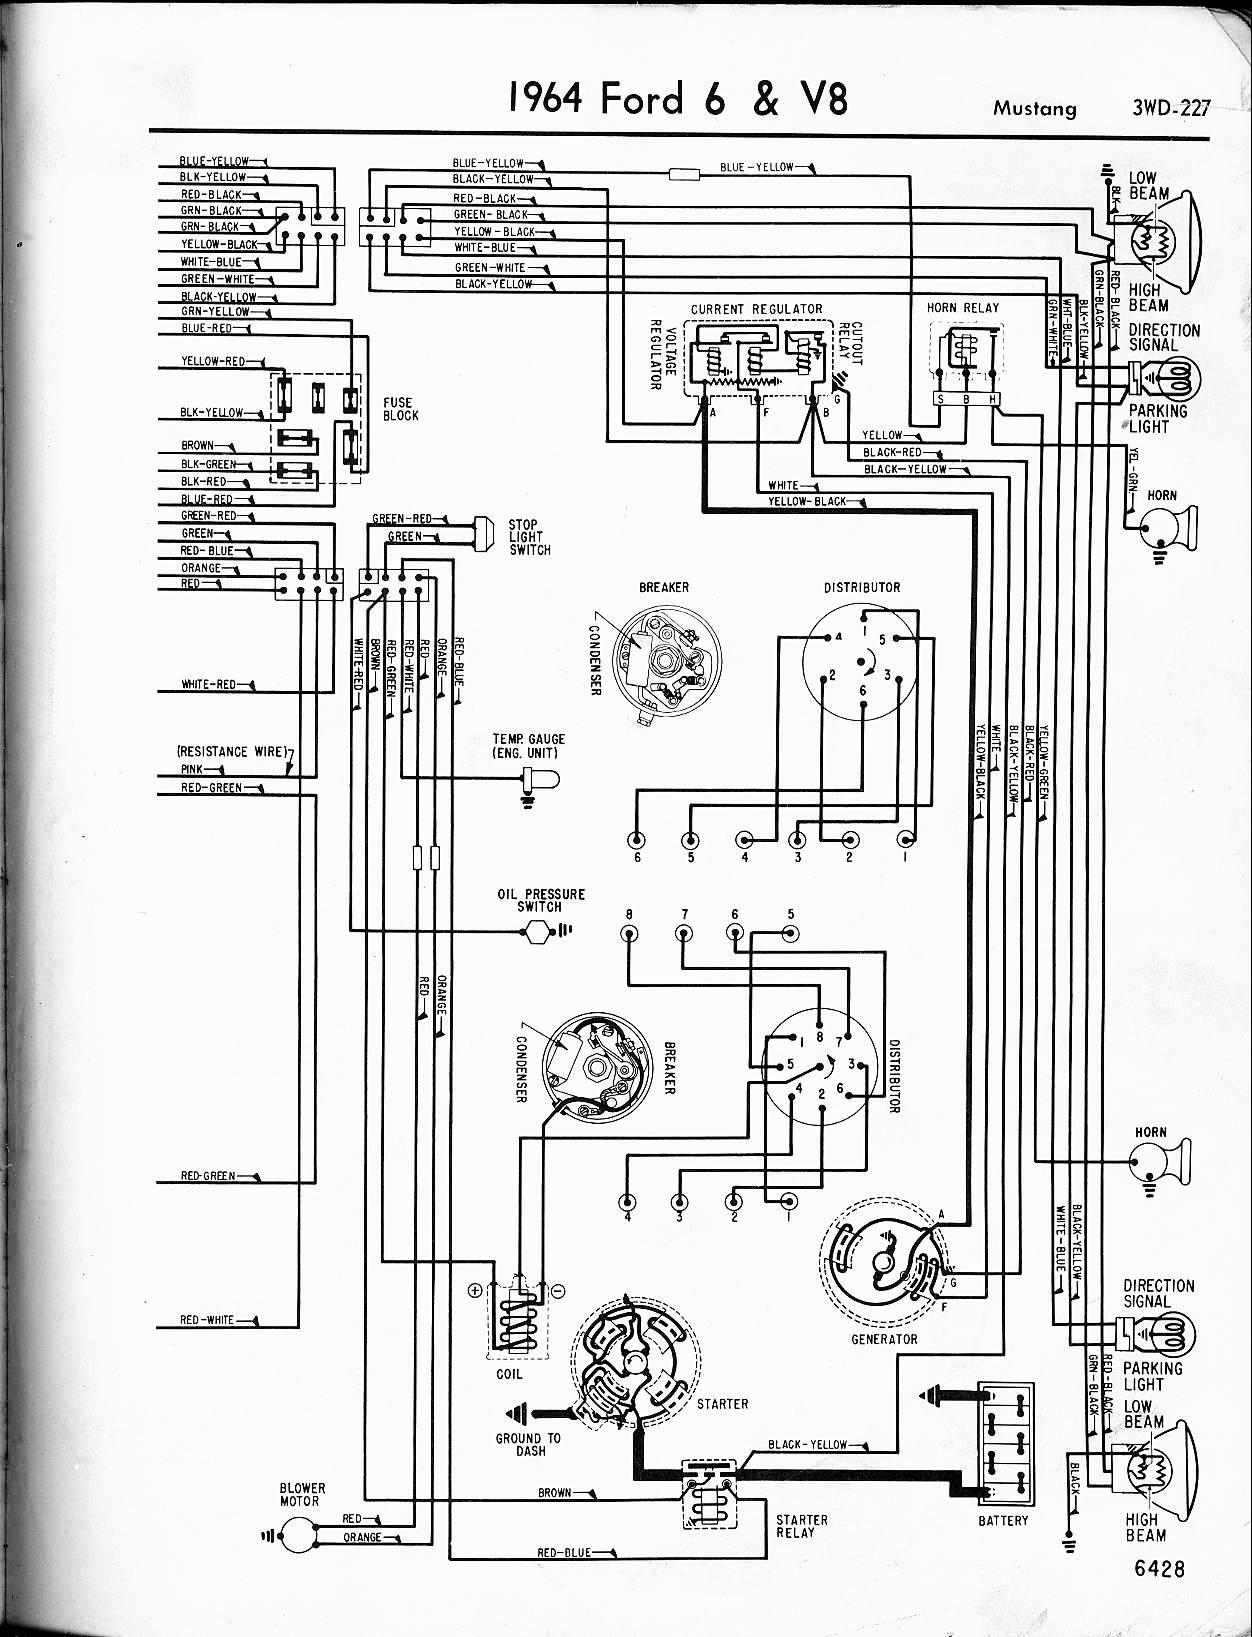 ford 6 and v8 mustang part 1 wiring image about wiring diagram